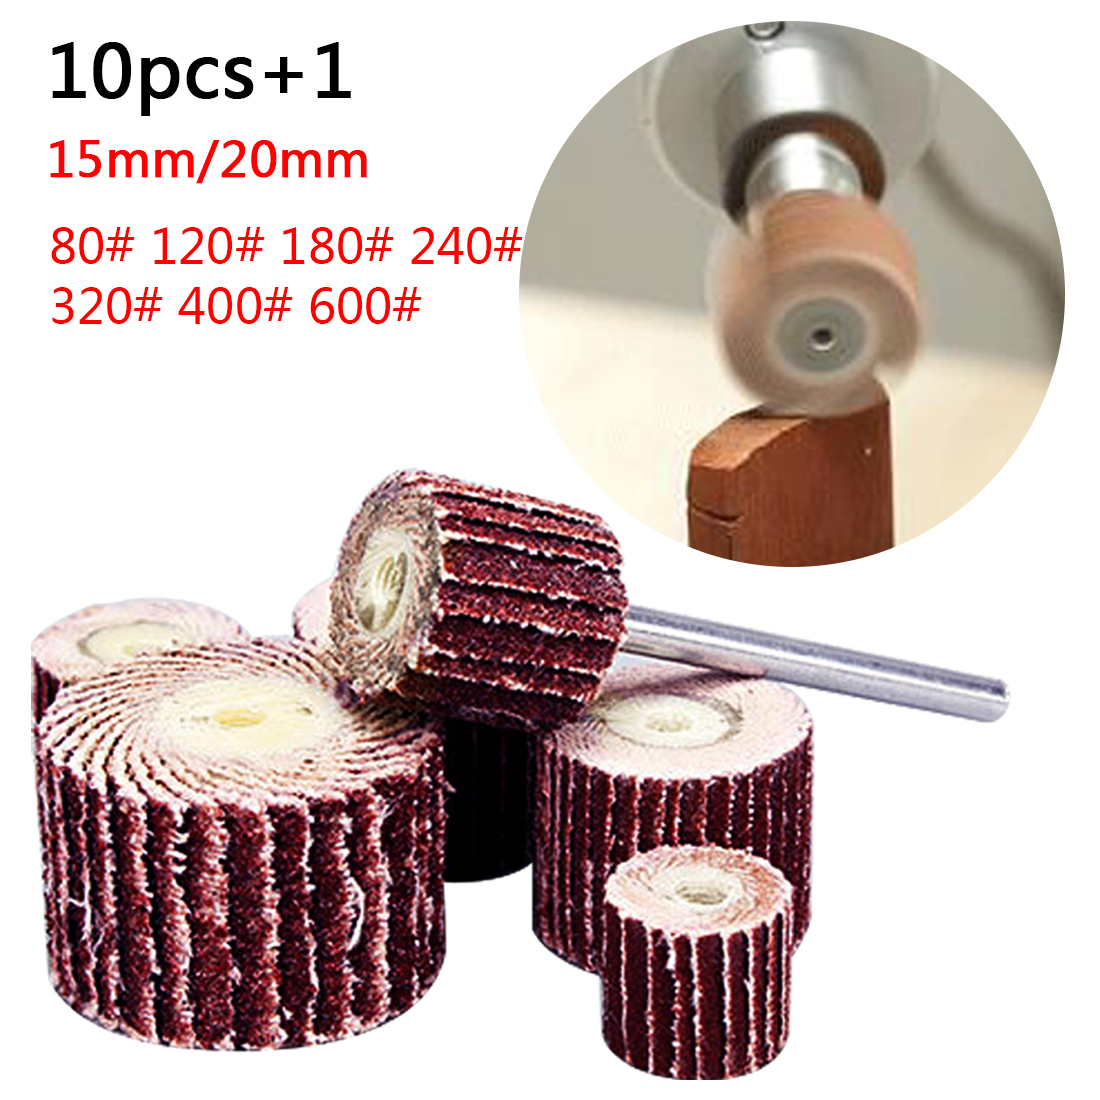 1pc Mandrel 10pcs Flap Wheel Brushes Emery Cloth Abrasive Sandpaper Grinding Compatible for Woodworking Disc 20mm 180#